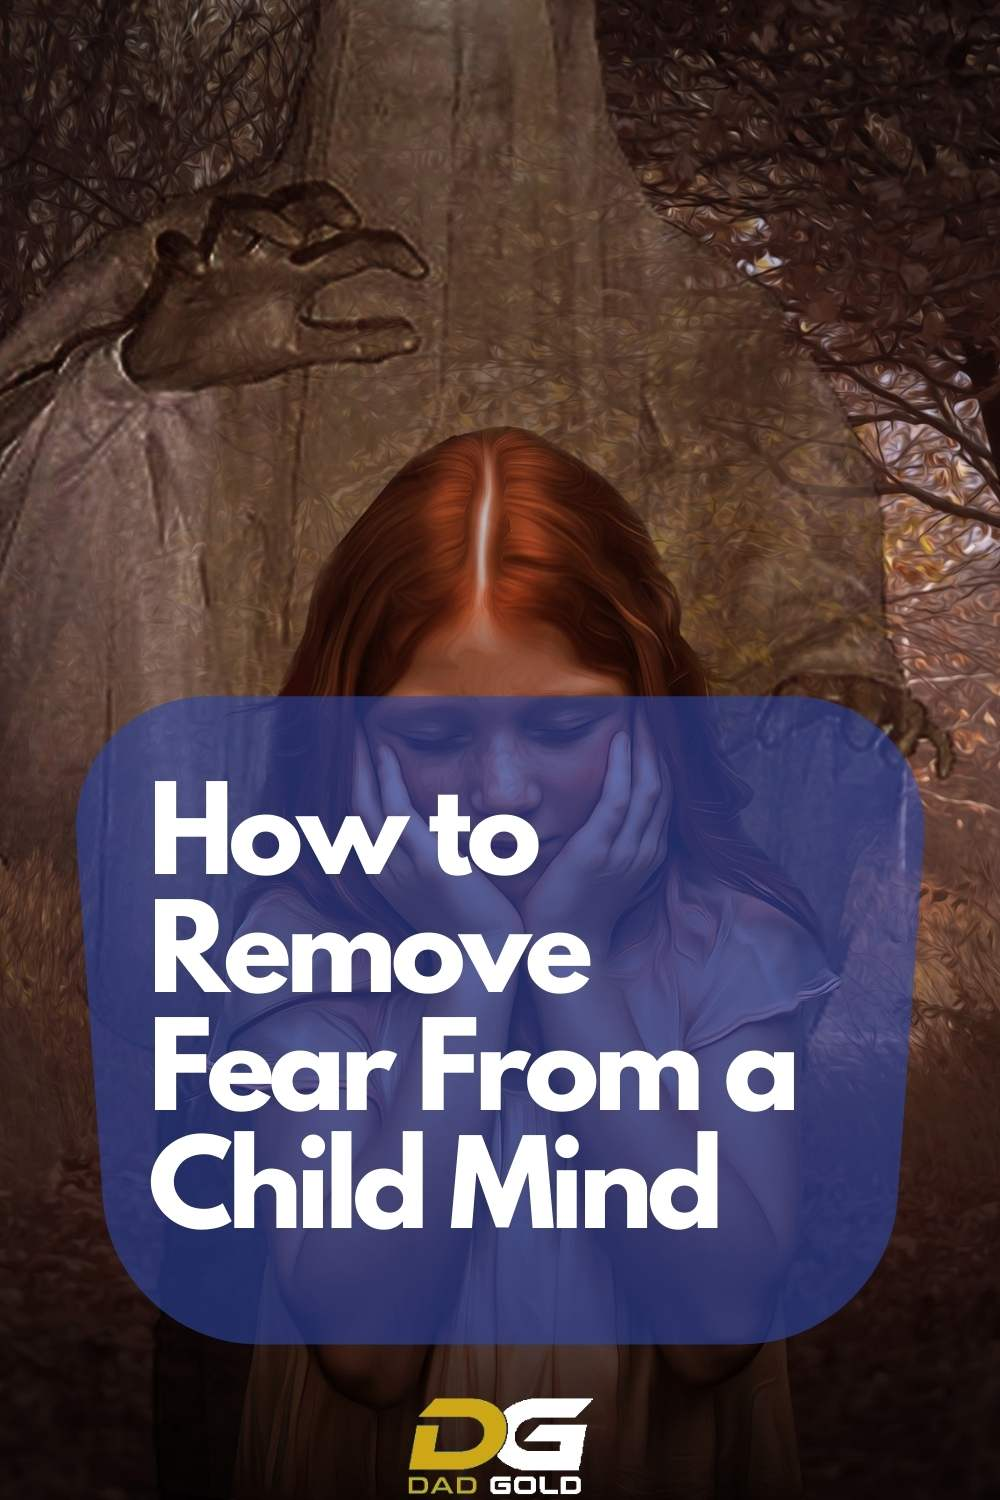 5 ways How to Remove Fear From a Child Mind